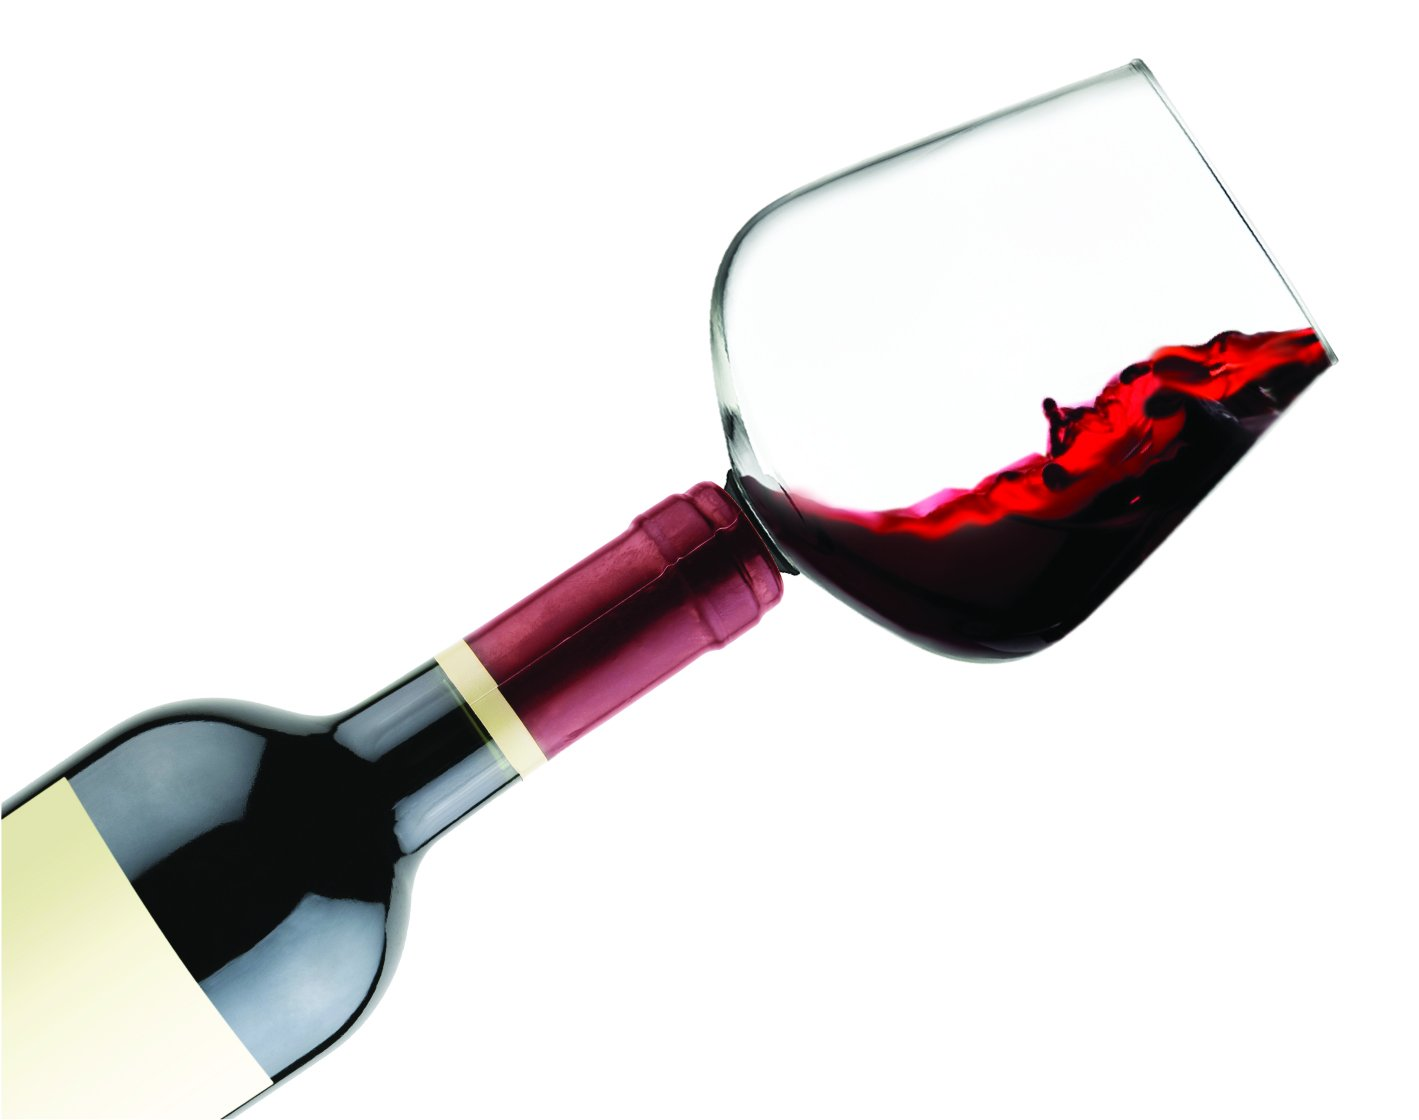 Godinger 22103 Chugmate Wine Glass Topper, the Goblet to Drink Straight from the Bottle, 8 oz, Clear by Godinger (Image #2)